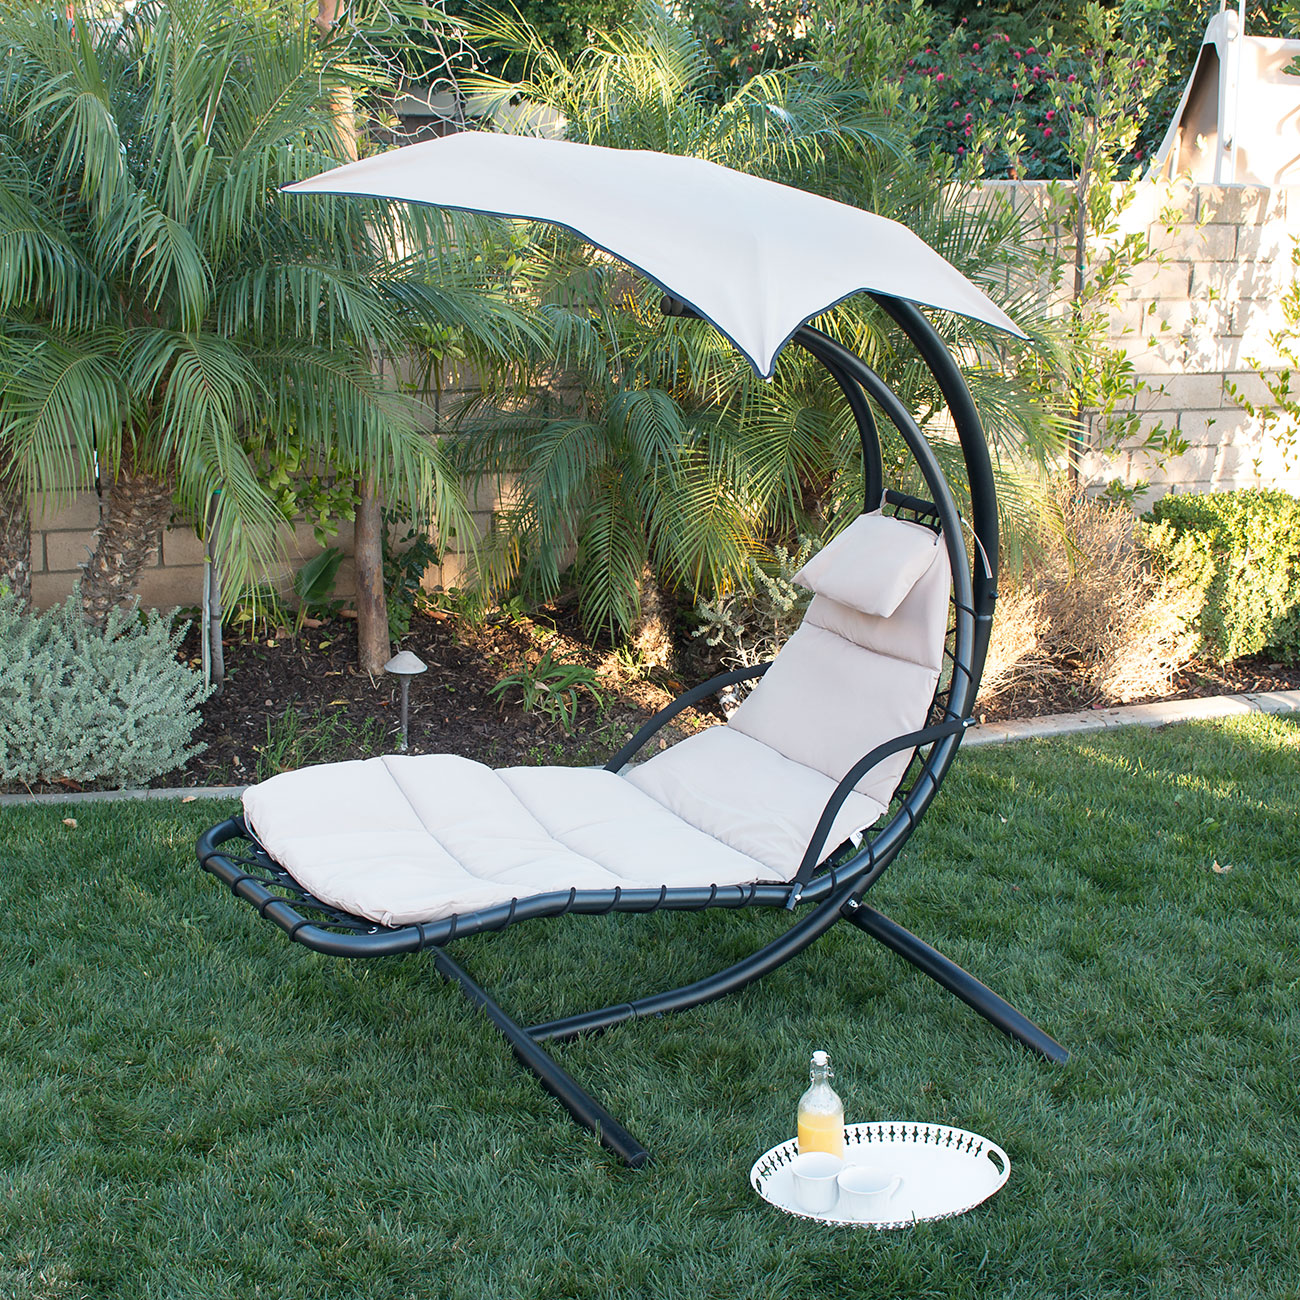 Hanging Chaise Lounge Chair Hammock Swing Canopy Glider